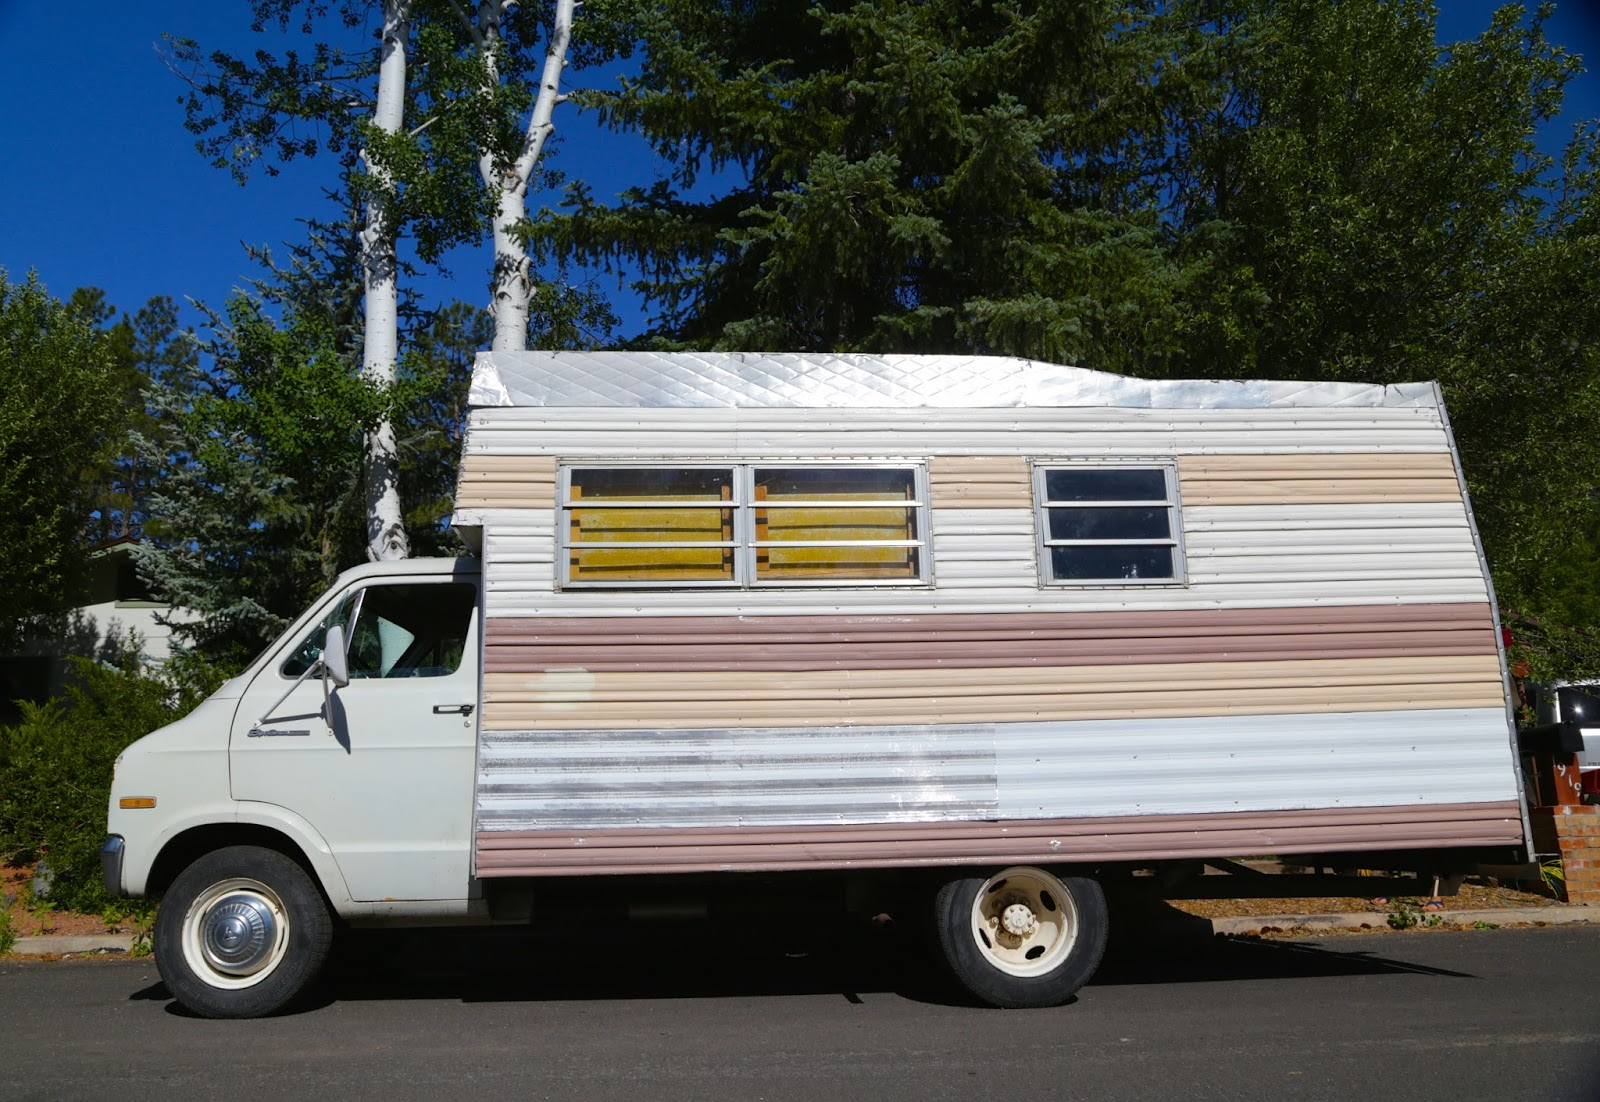 1972 Dodge Sportsman RV.